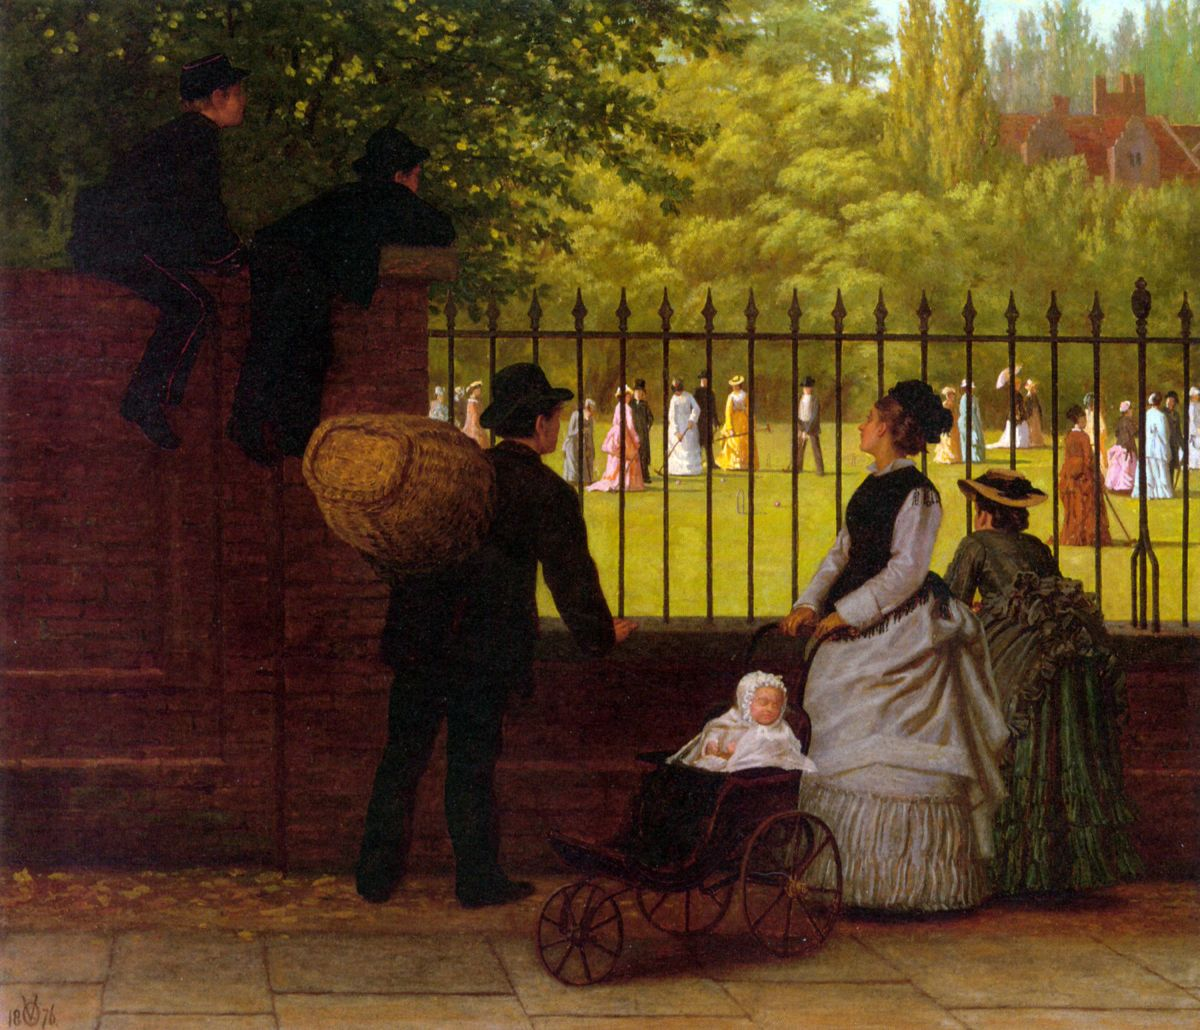 The Croquet Game by Ormsby Wood